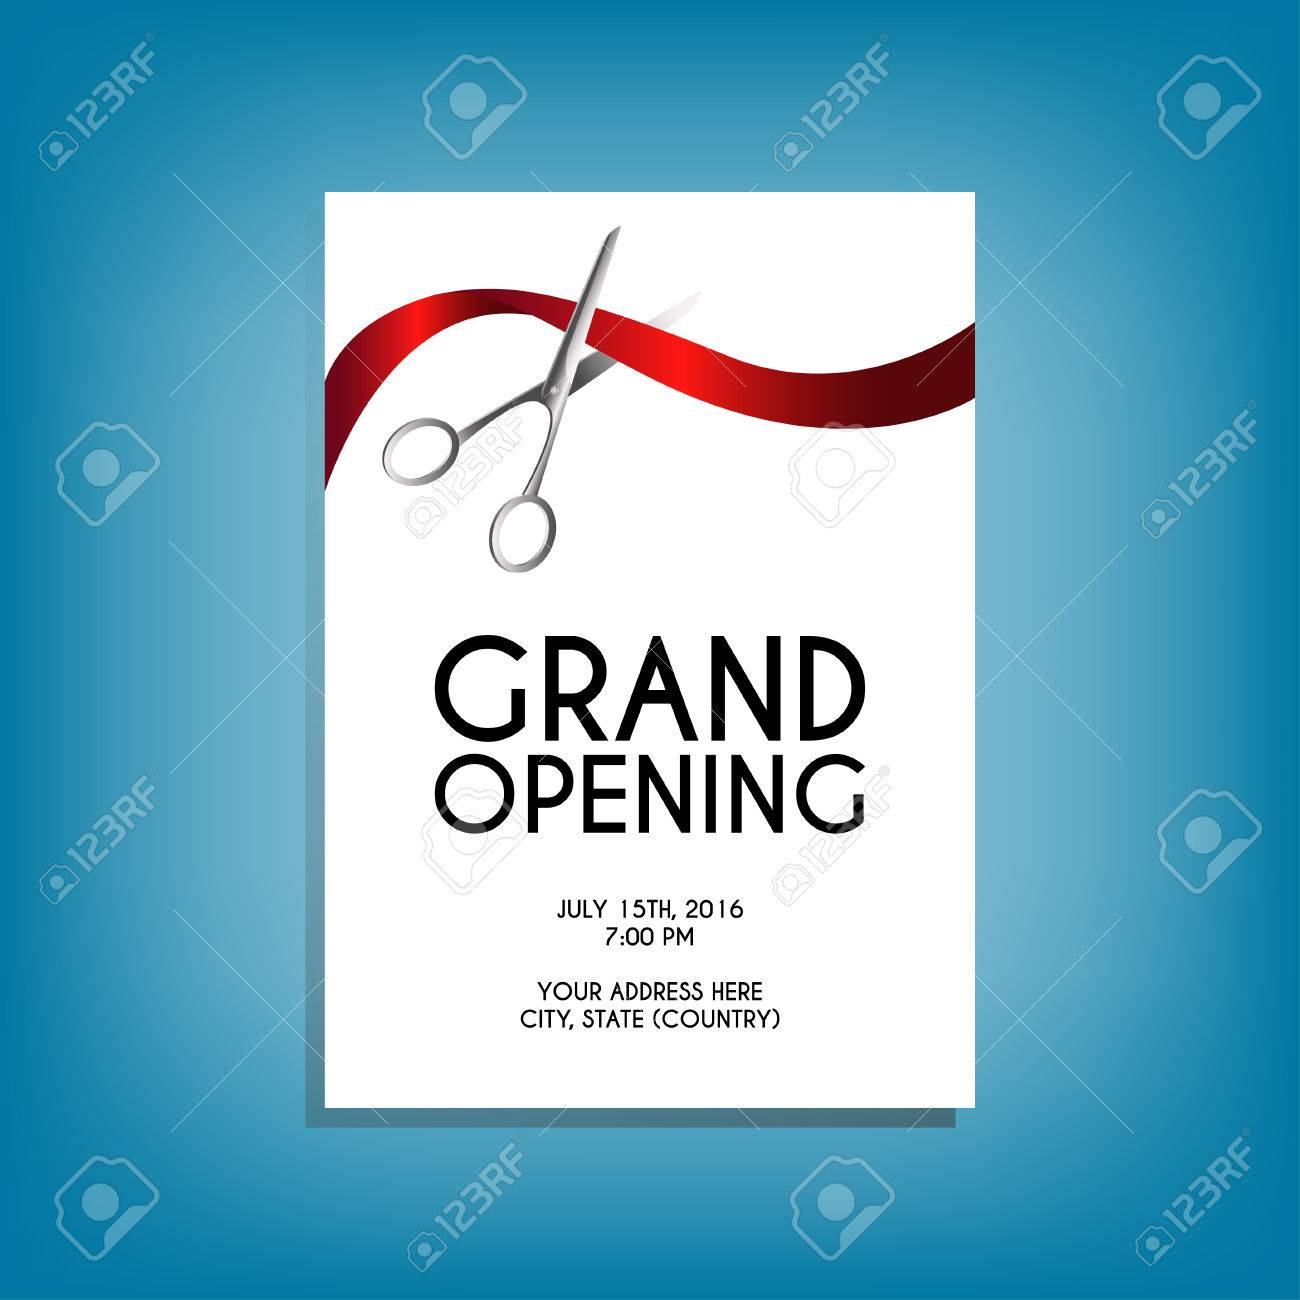 Free Grand Opening Flyer Template from previews.123rf.com